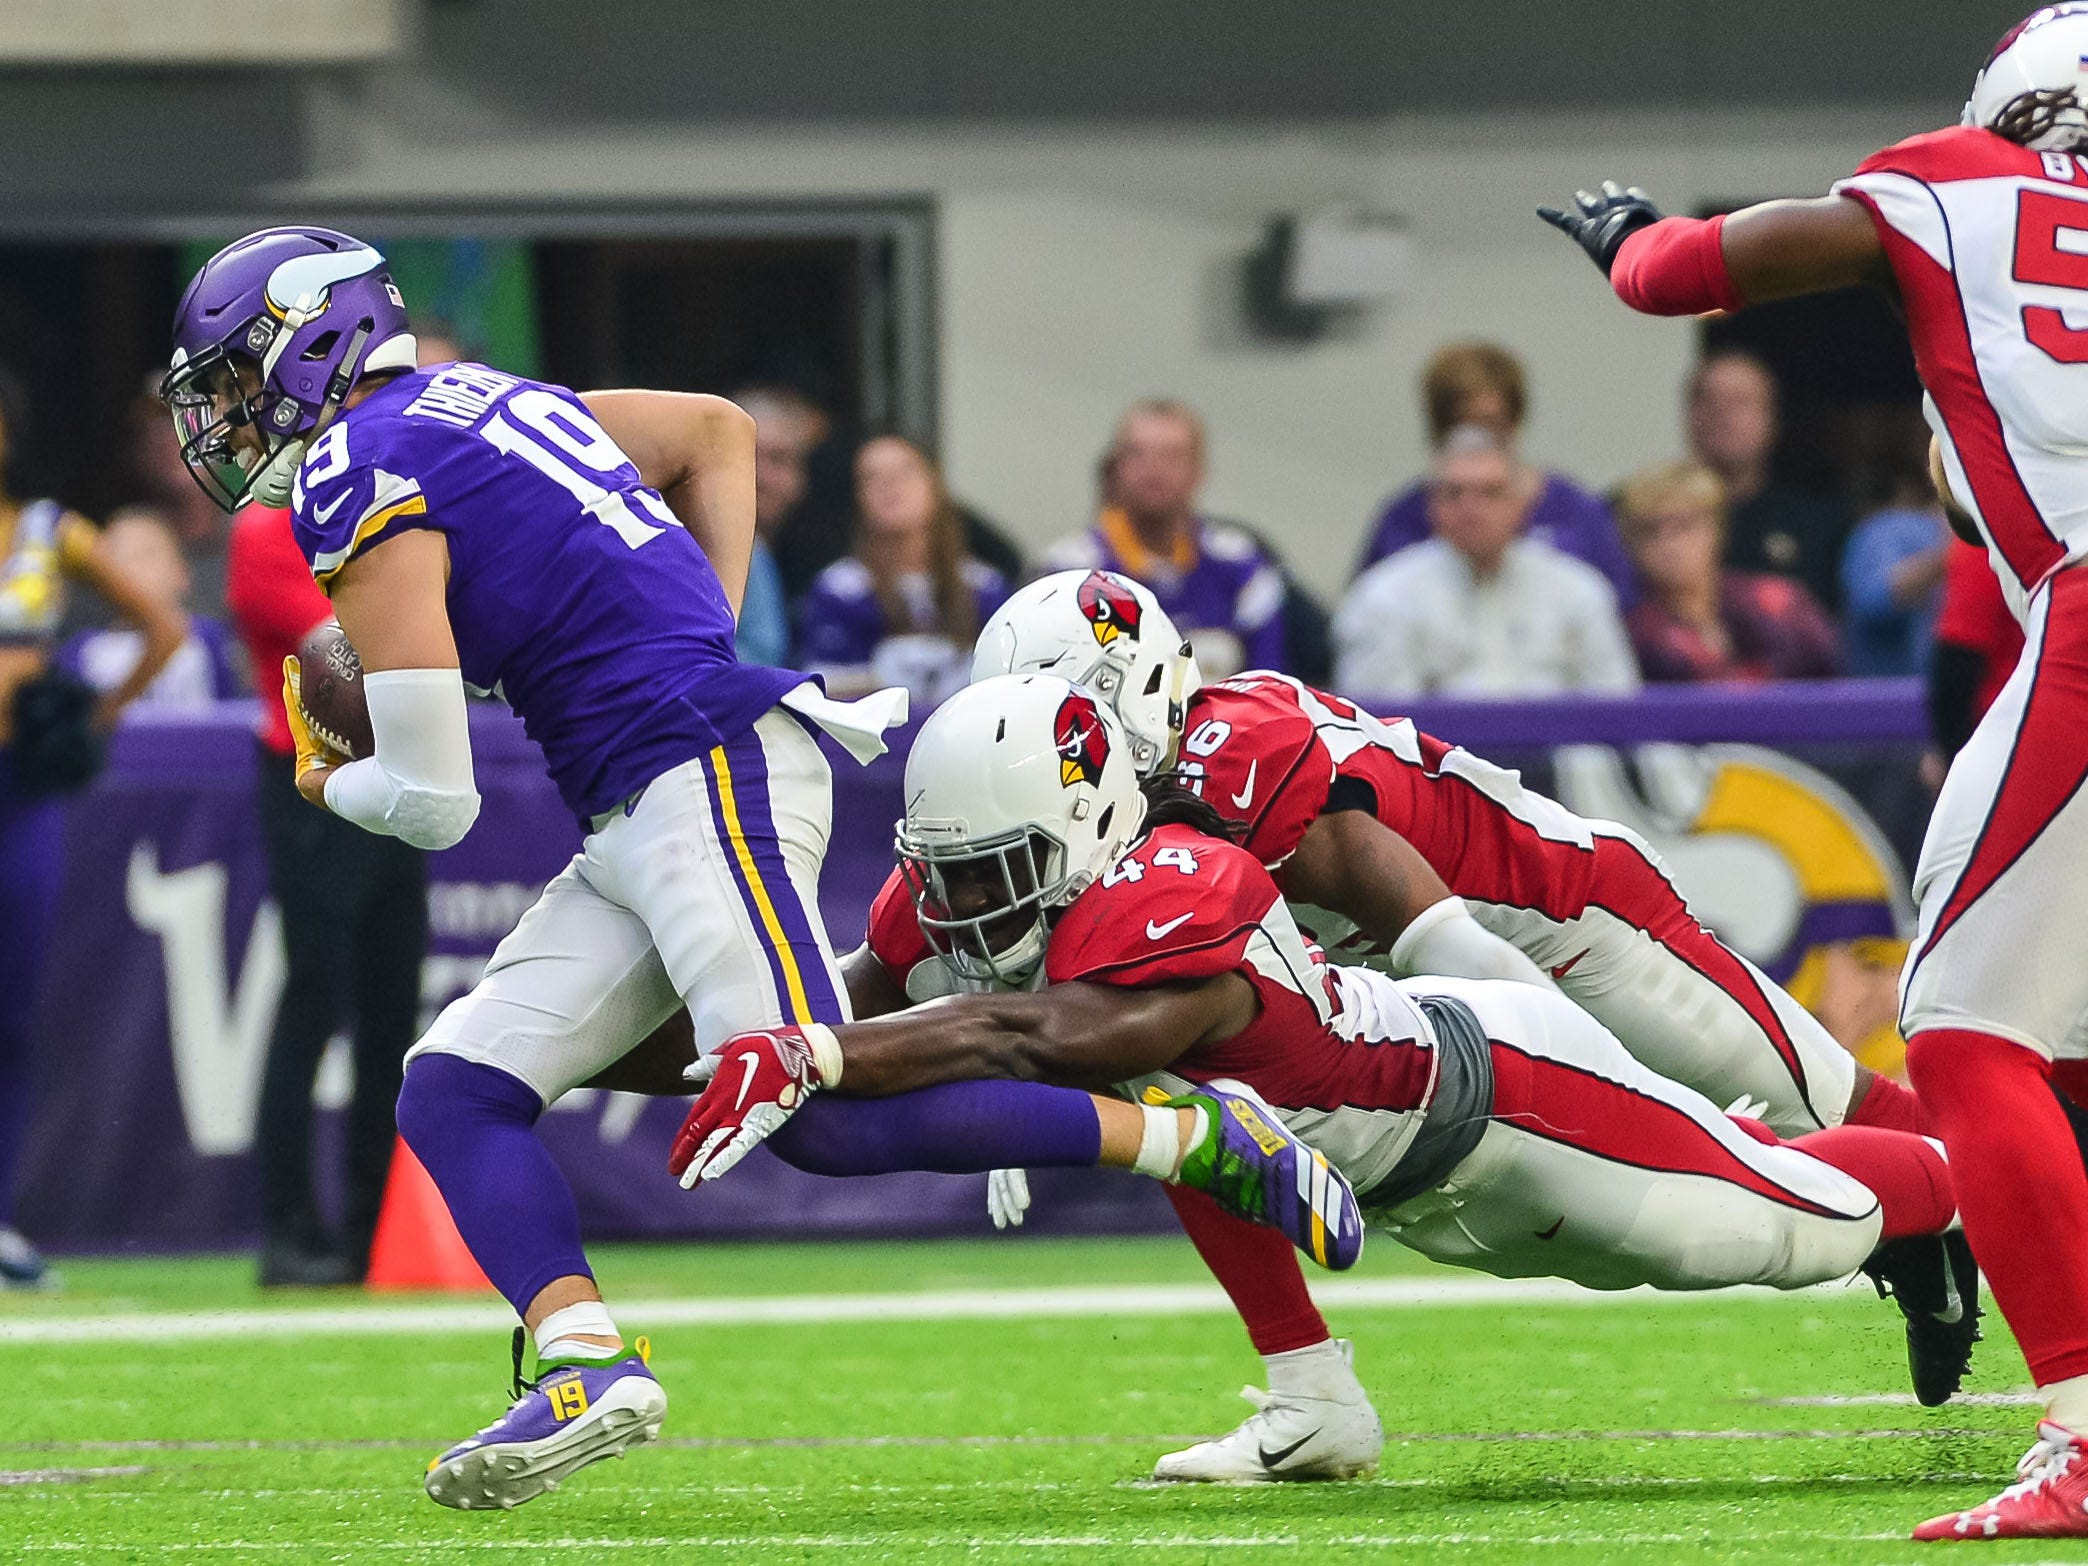 Oct 14, 2018; Minneapolis, MN, USA; Minnesota Vikings wide receiver Adam Thielen (19) is tackled by Arizona Cardinals defensive end Markus Golden (44) during the second quarter at U.S. Bank Stadium. Mandatory Credit: Jeffrey Becker-USA TODAY Sports